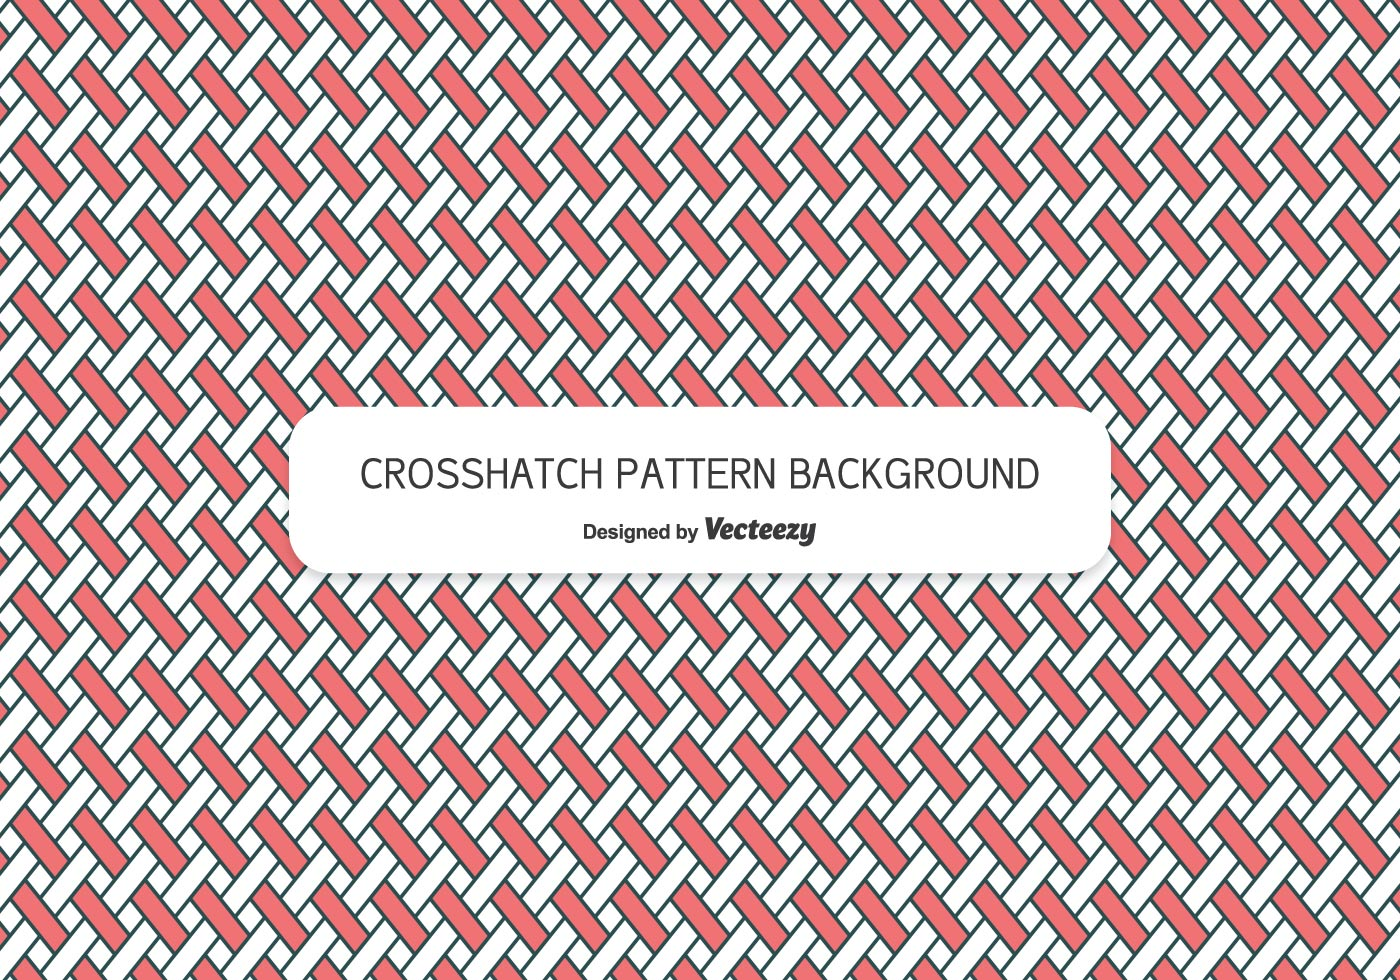 crosshatch style background pattern download free vector